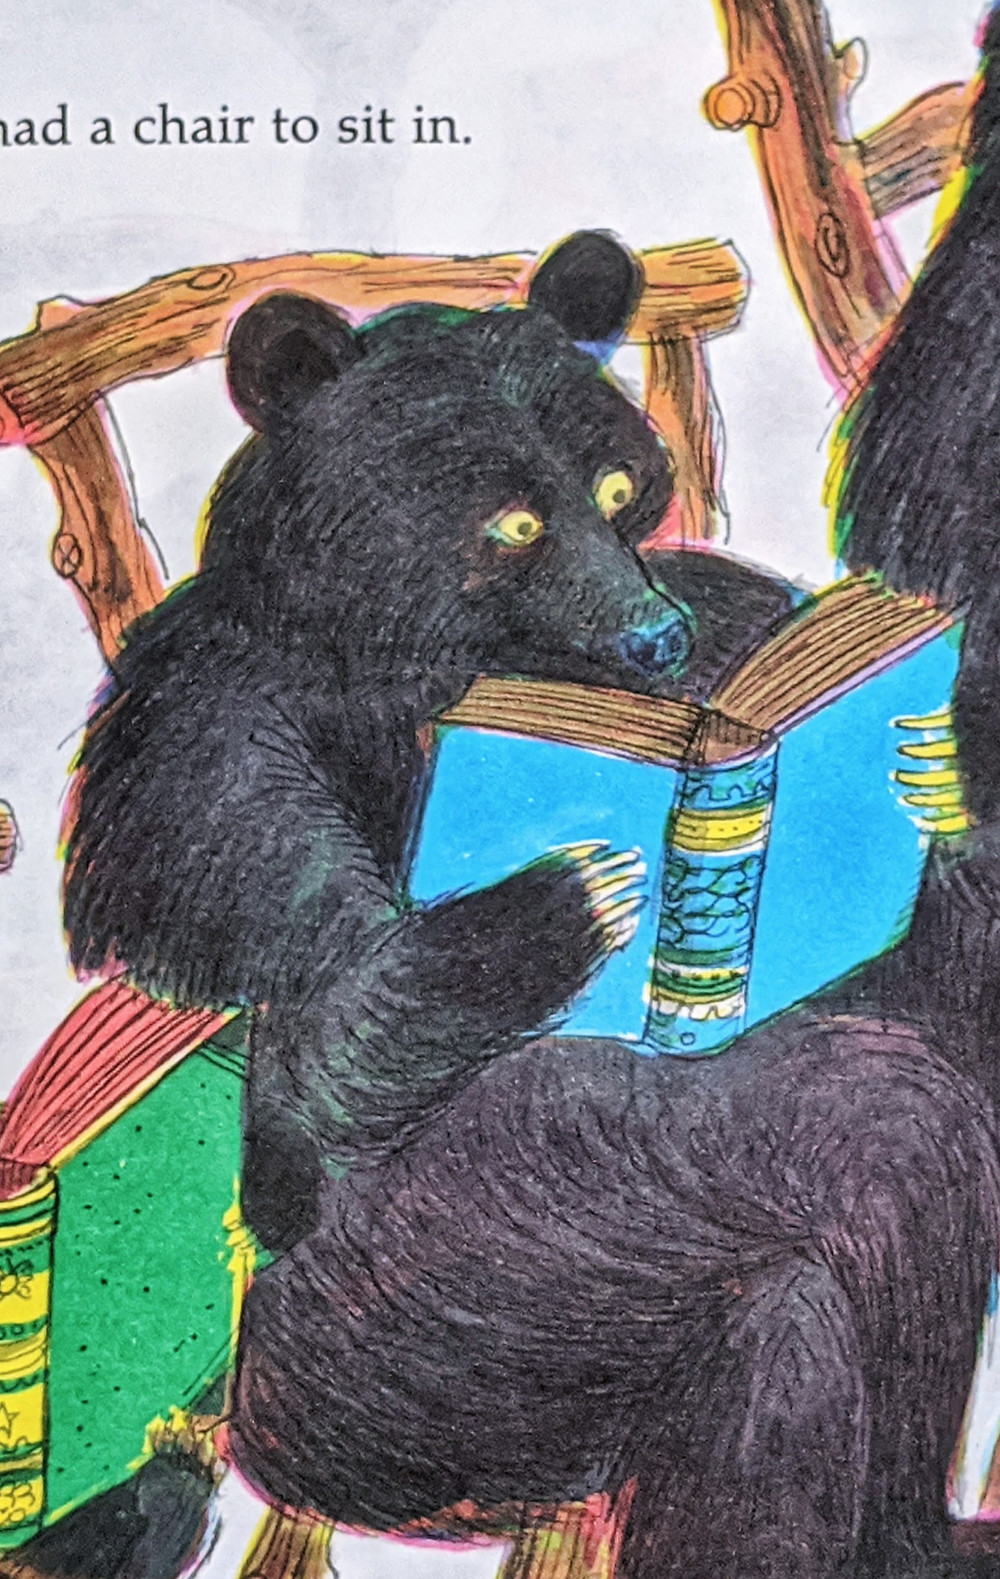 Mama Bear sits and reads her book in The Three Bears by Paul Galdone